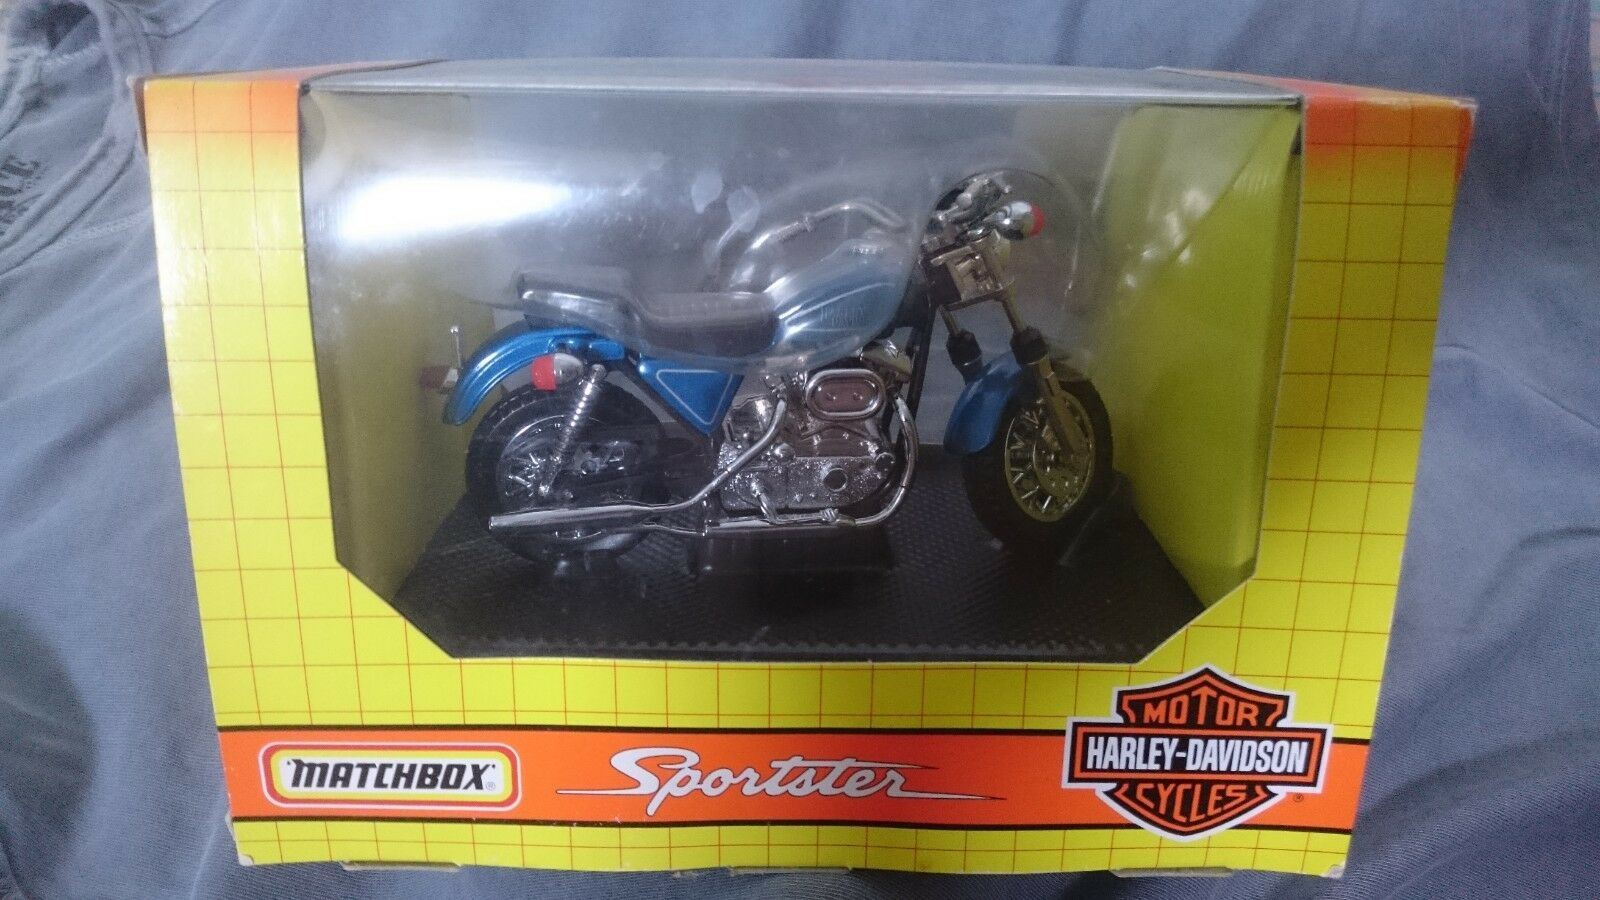 MATCHBOX HARLEY DAVIDSON SPORTSTER SPECIAL EDITION 73330 1 15 SCALE